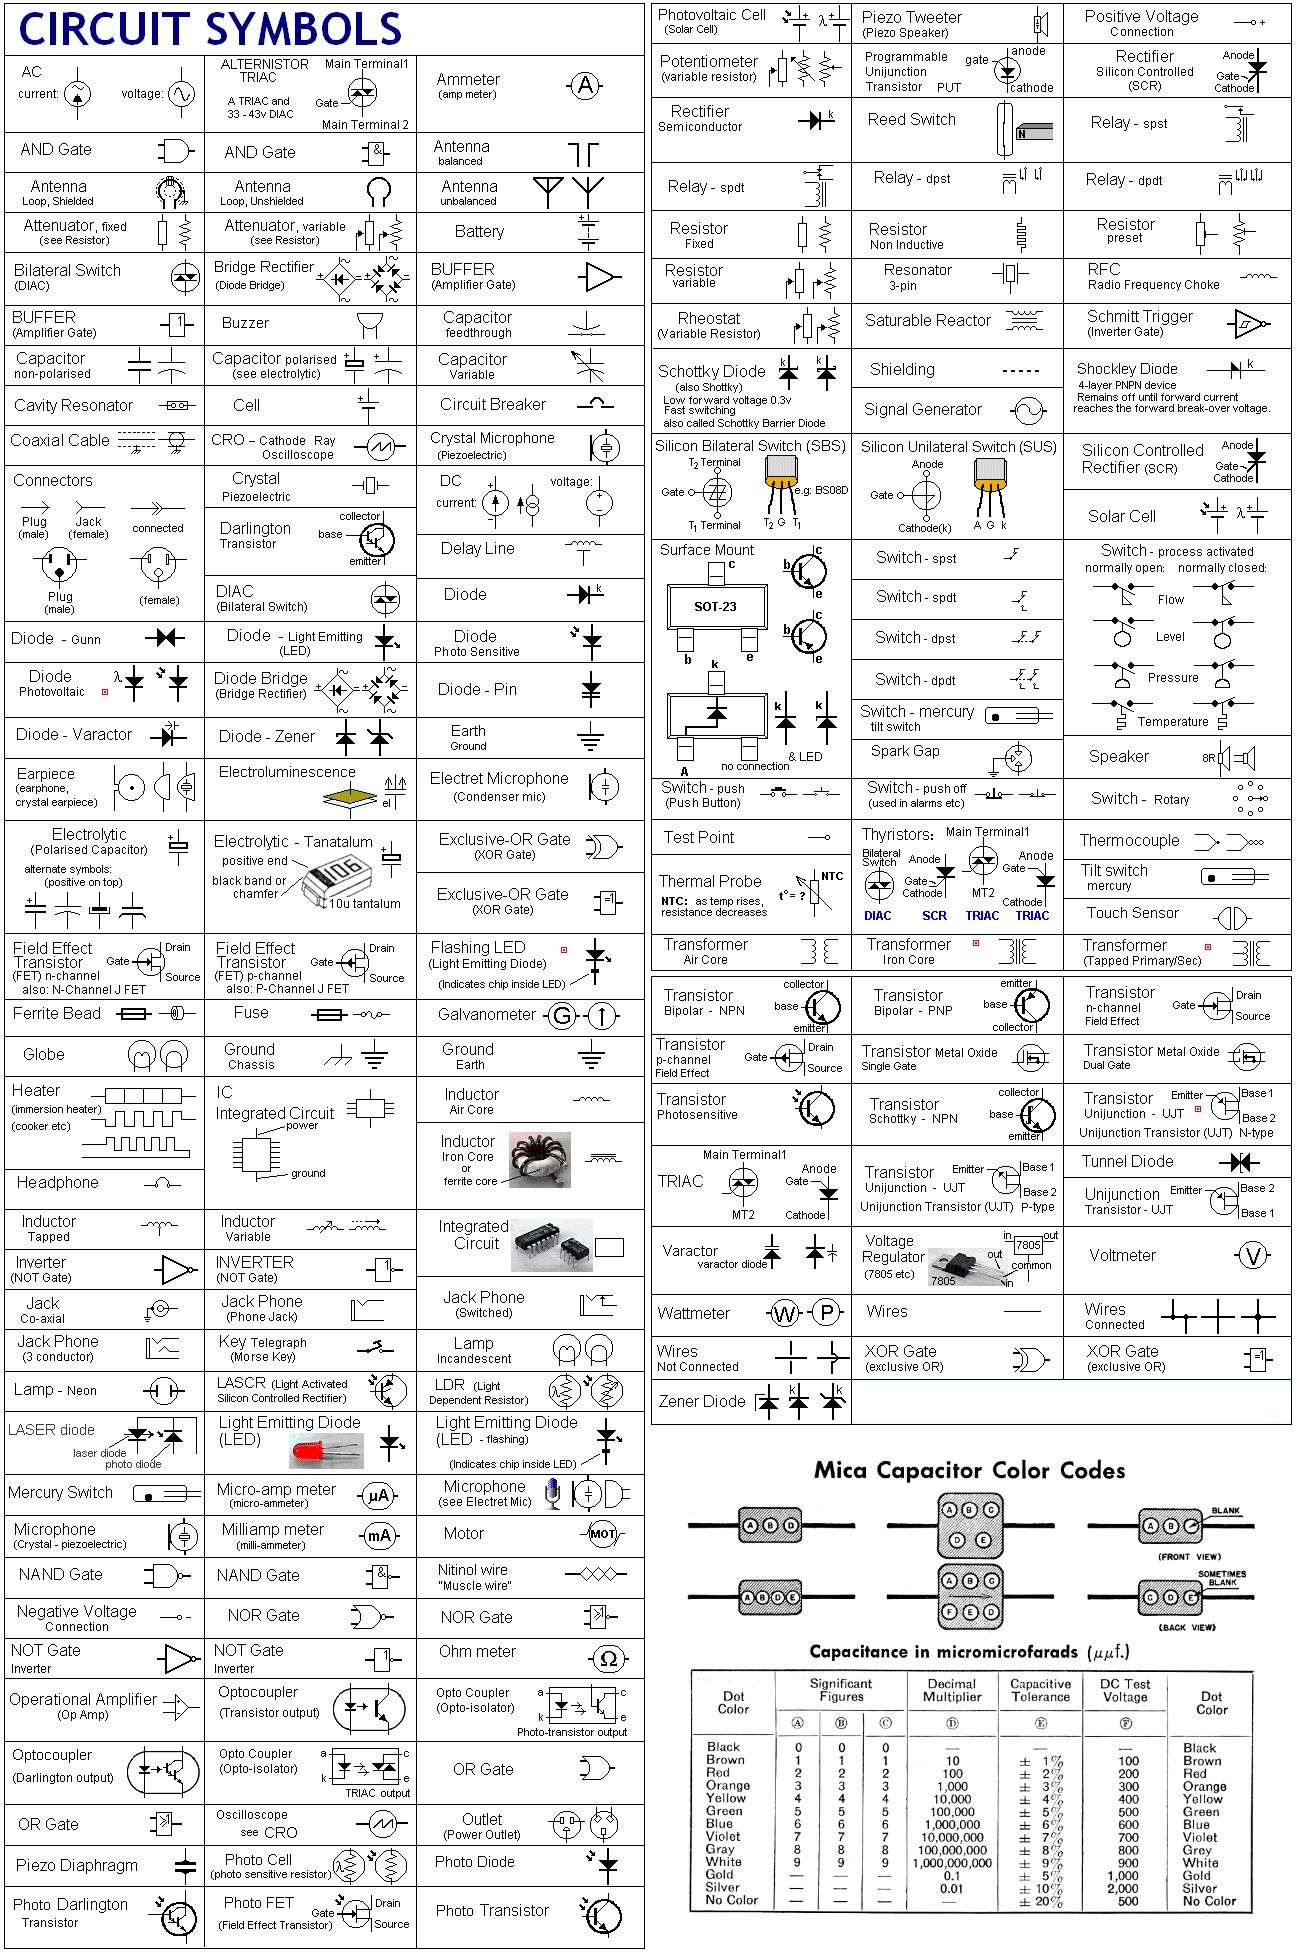 schematic symbols chart | electric circuit symbols: a considerably, Circuit diagram